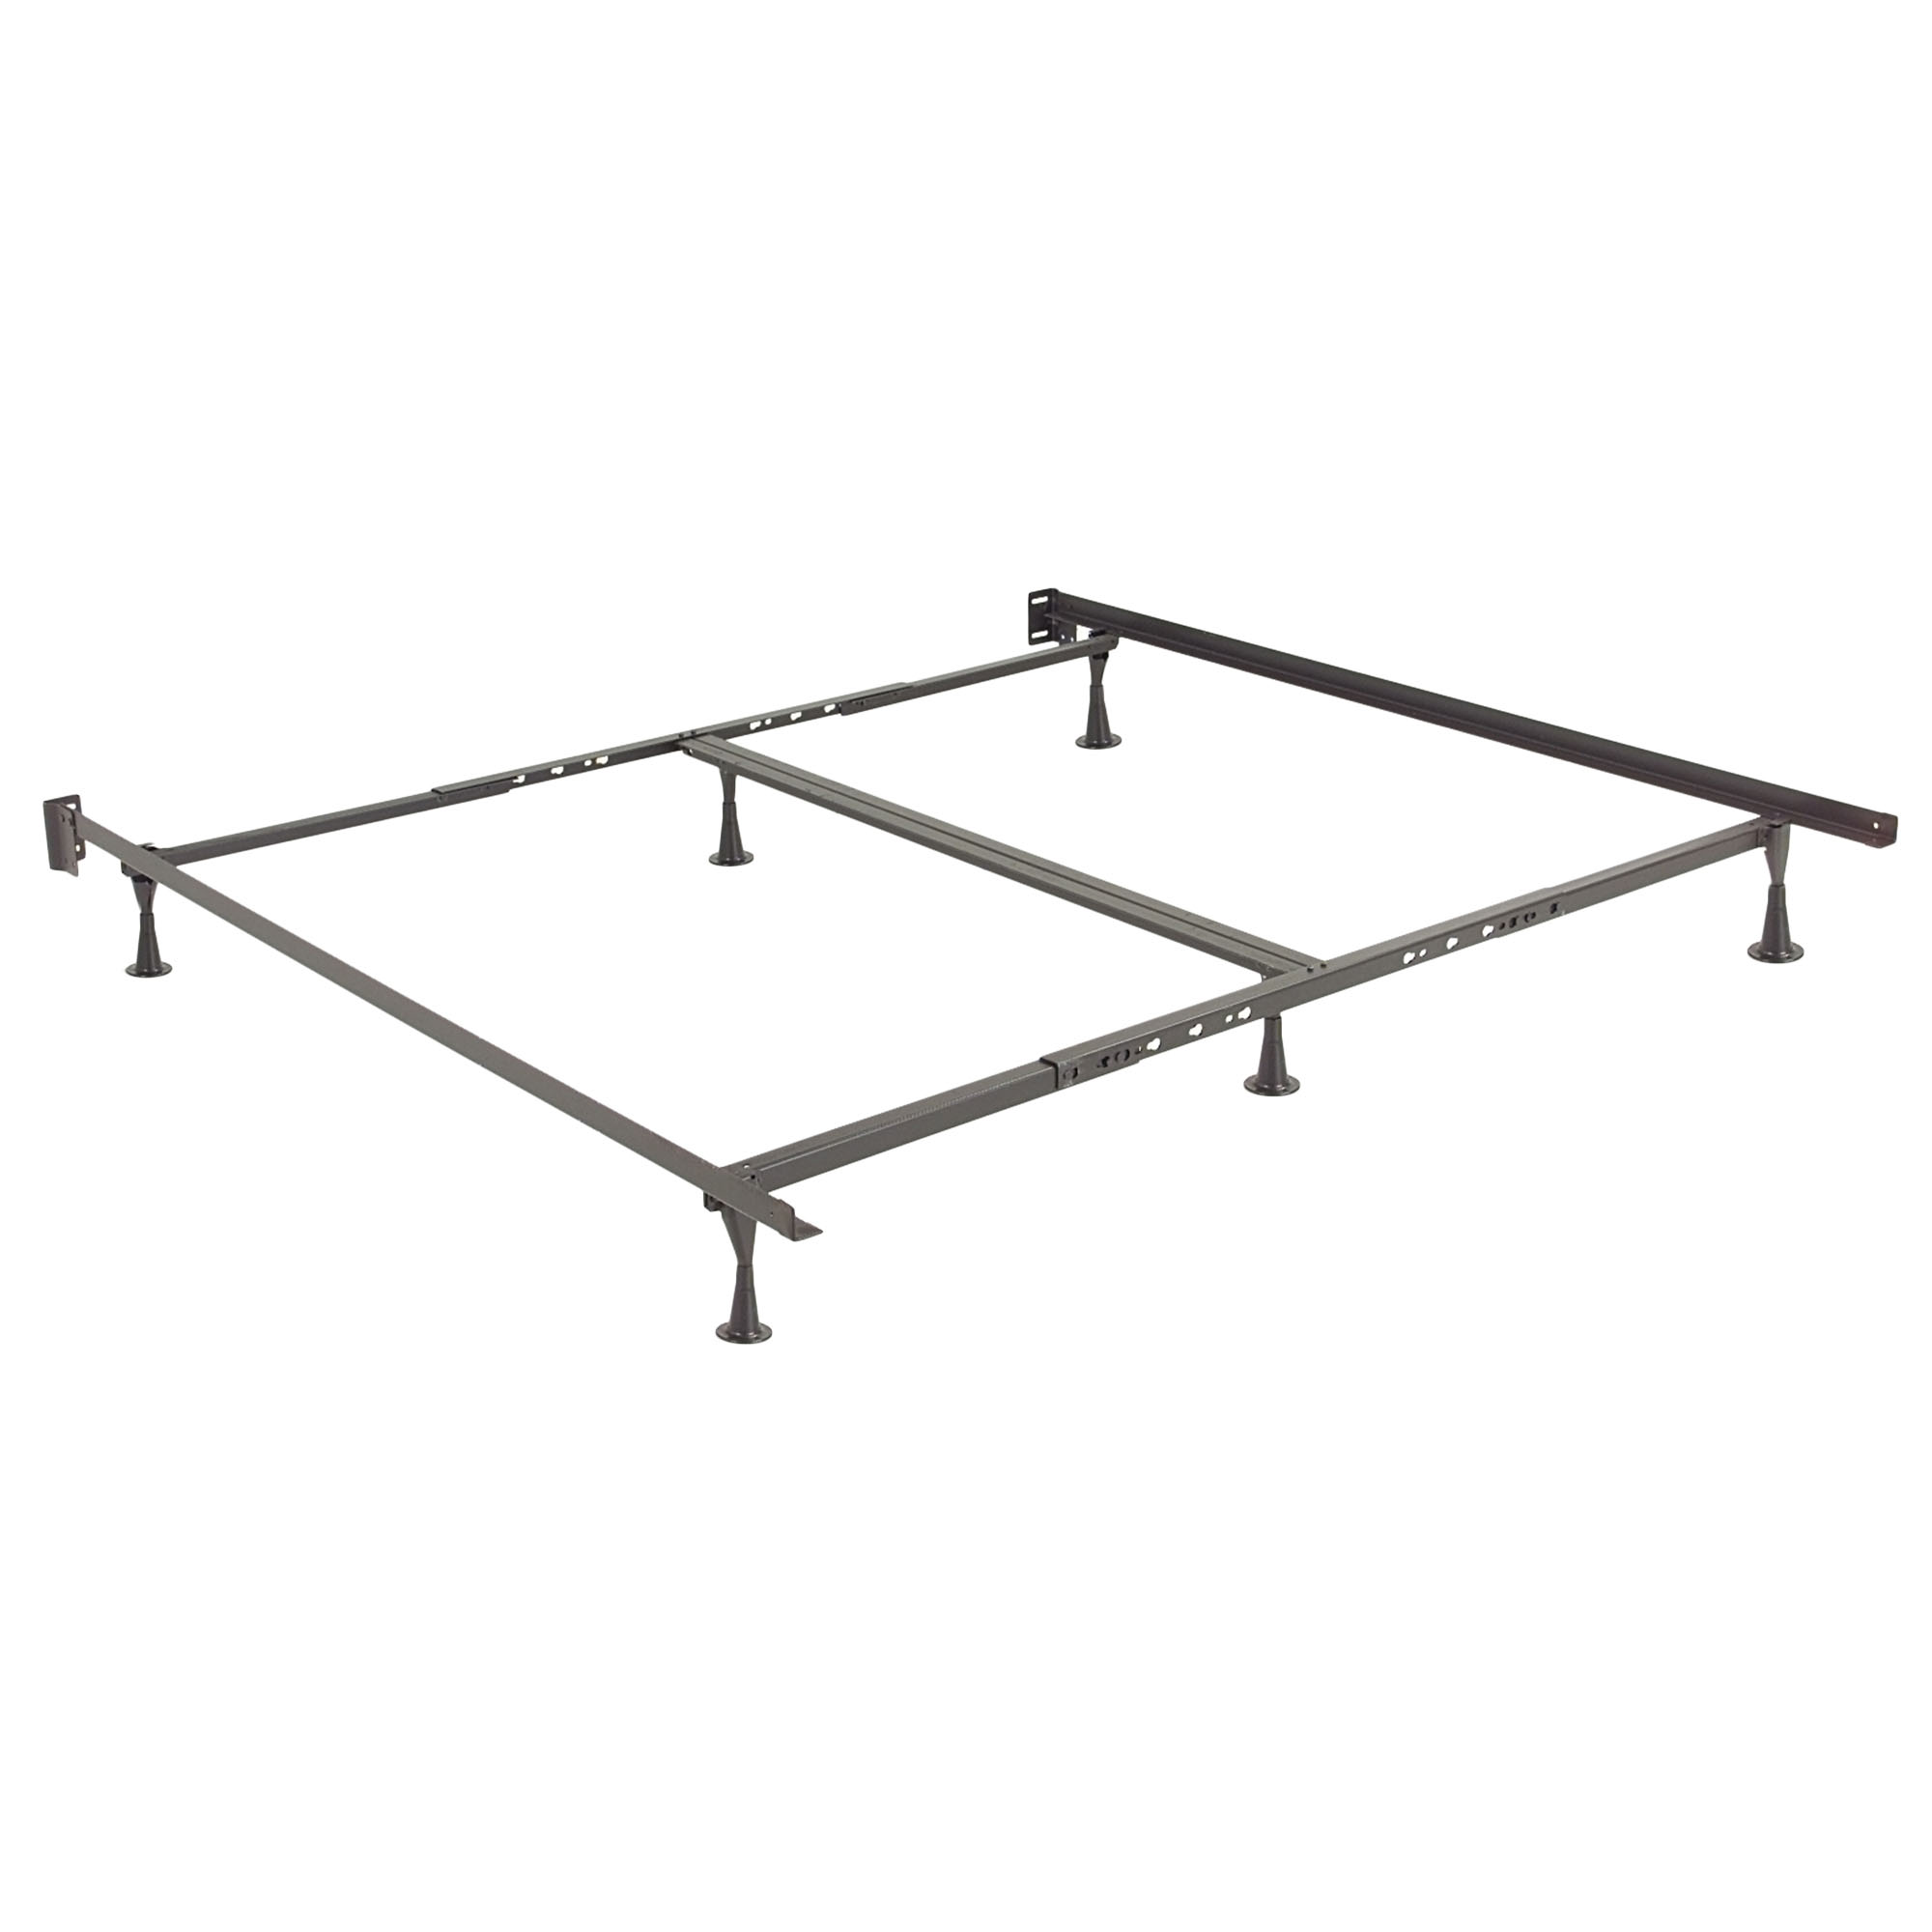 420252fashion Bed Group Restmore Adjustable Bed Frame 806g With